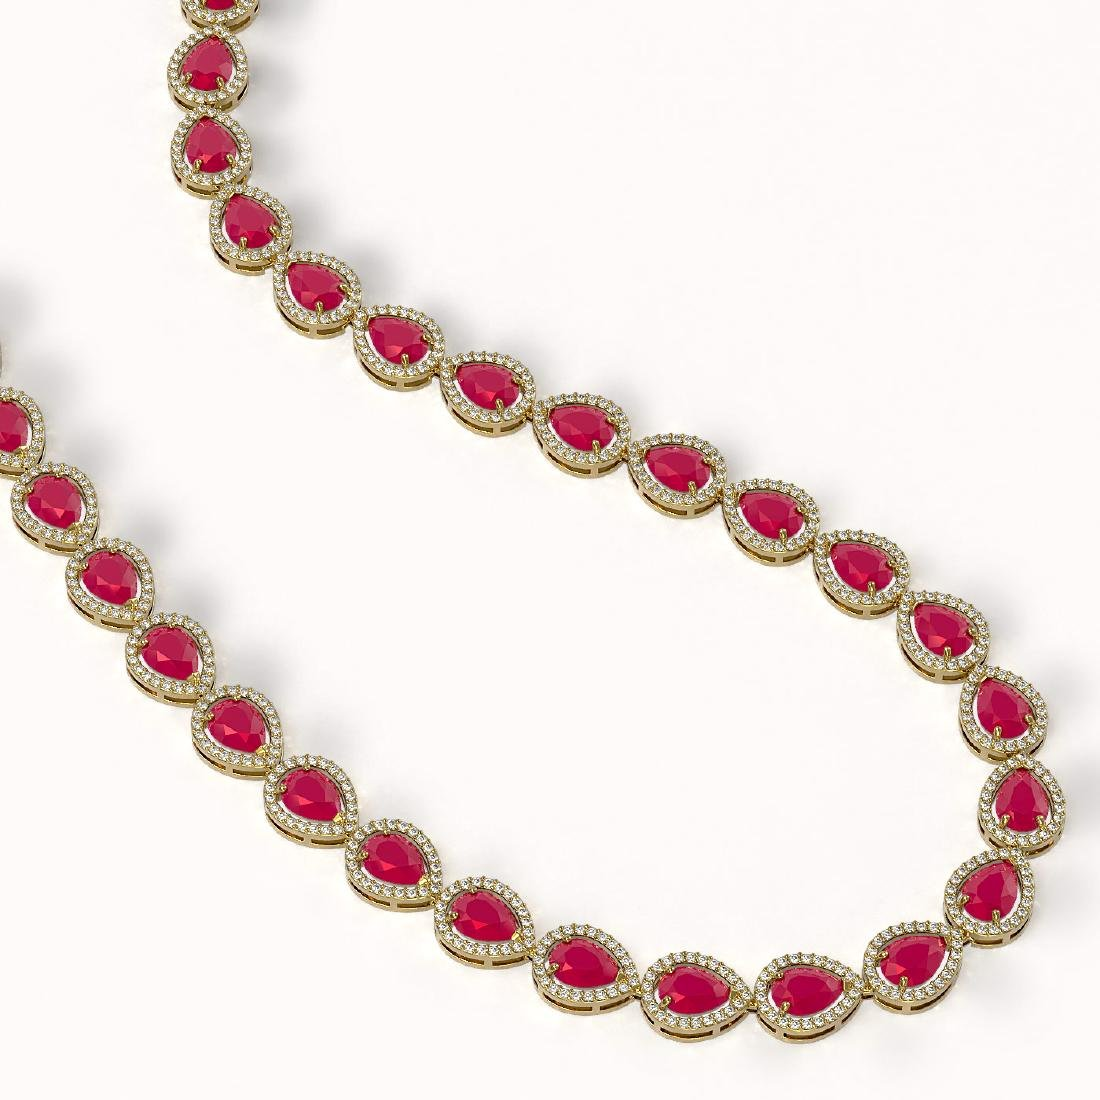 45.93 CTW Ruby & Diamond Halo Necklace 10K Yellow Gold - 2